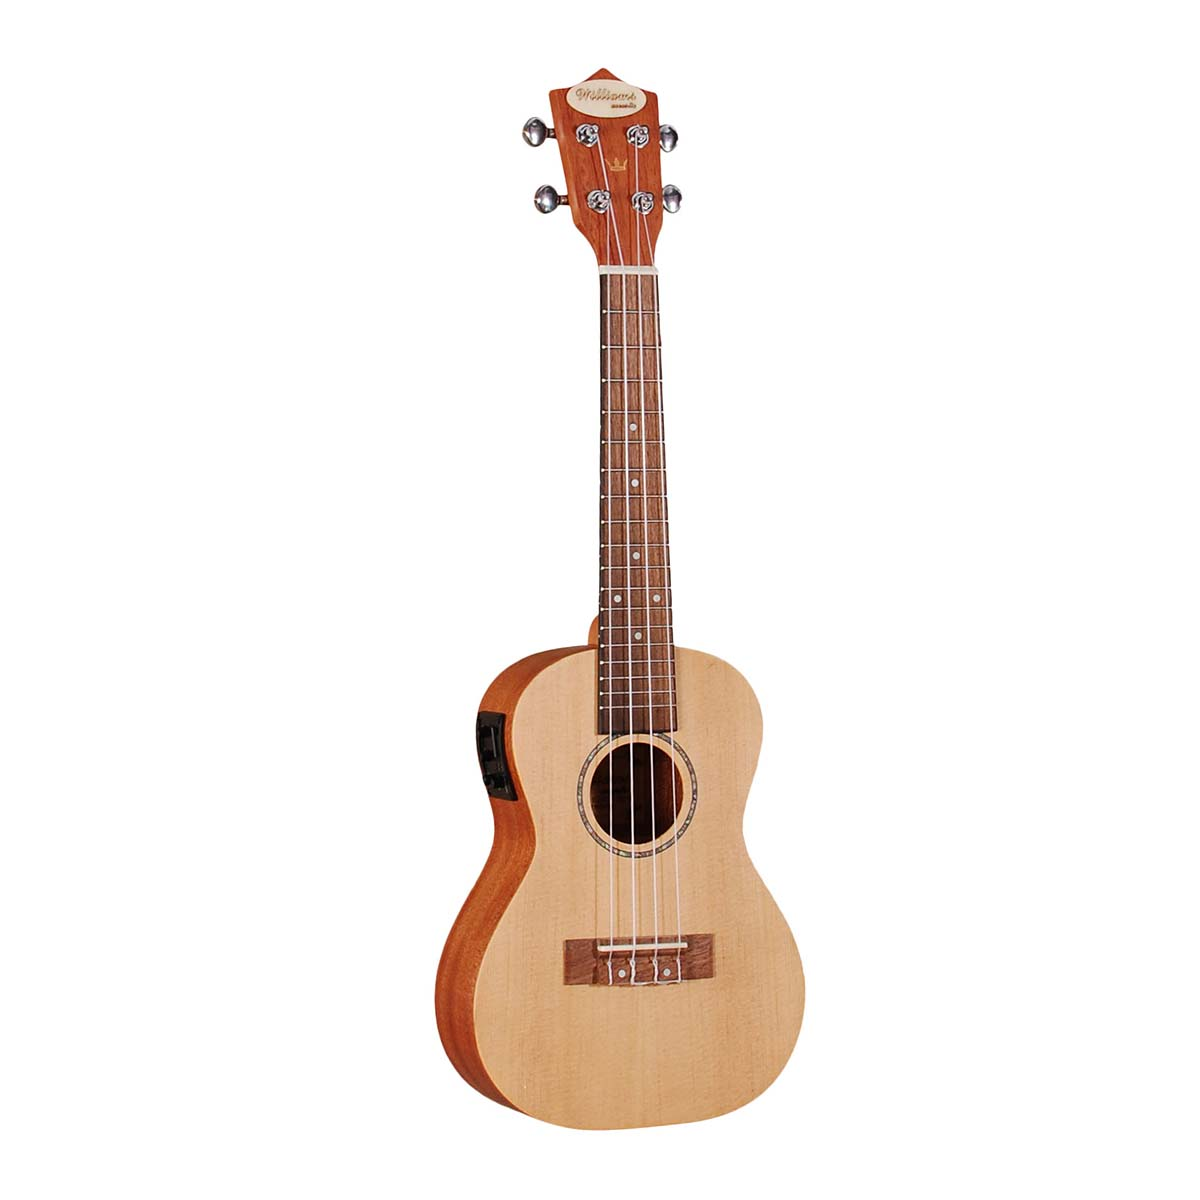 Køb Williams Acoustic EU200C-EQ v2 concert ukulele til 1.099,00 kr.